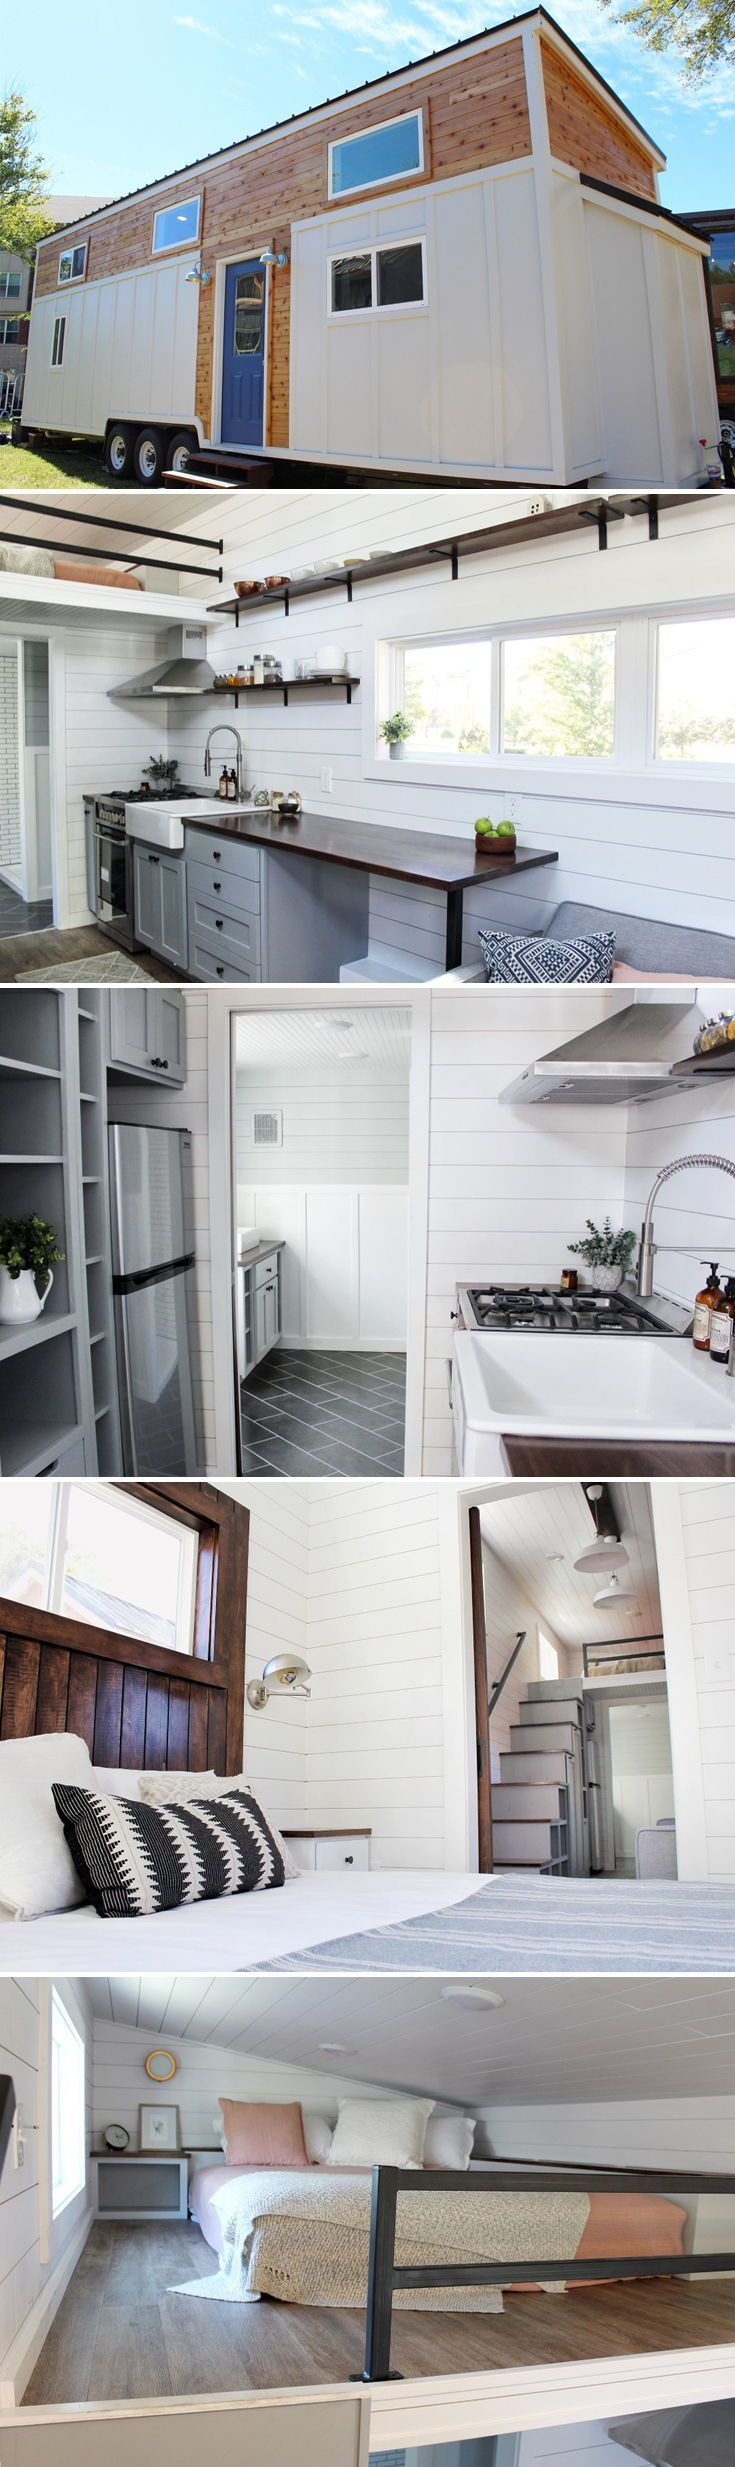 Photo of Everest by Mustard Seed Tiny Homes – #ceilings #Everest #Homes #Mustard #Seed